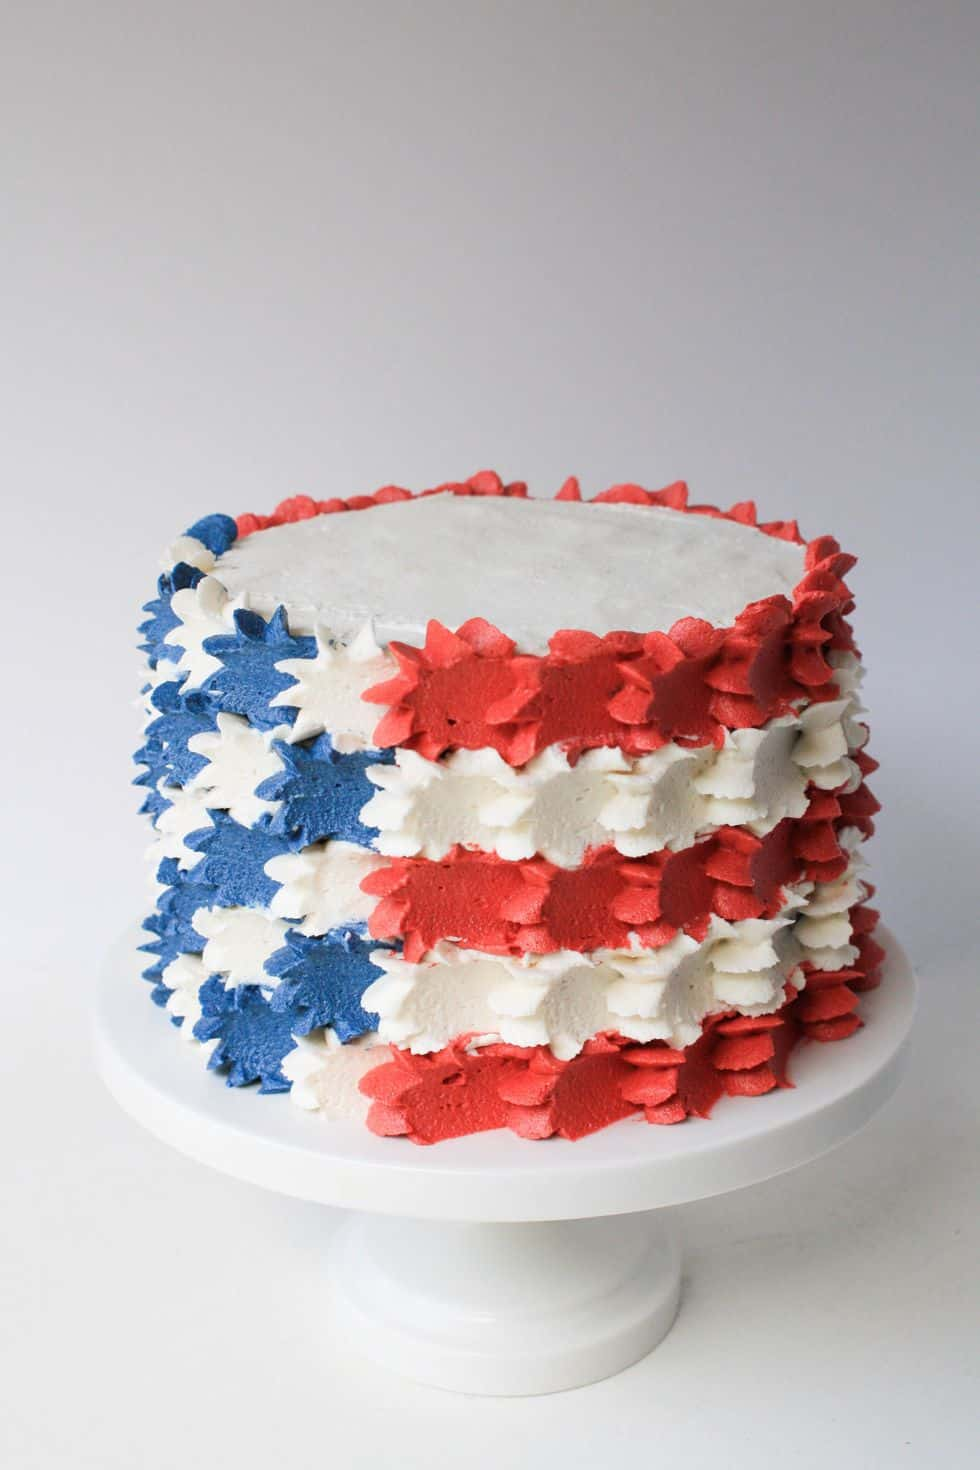 Buttercream stars and stripes cake